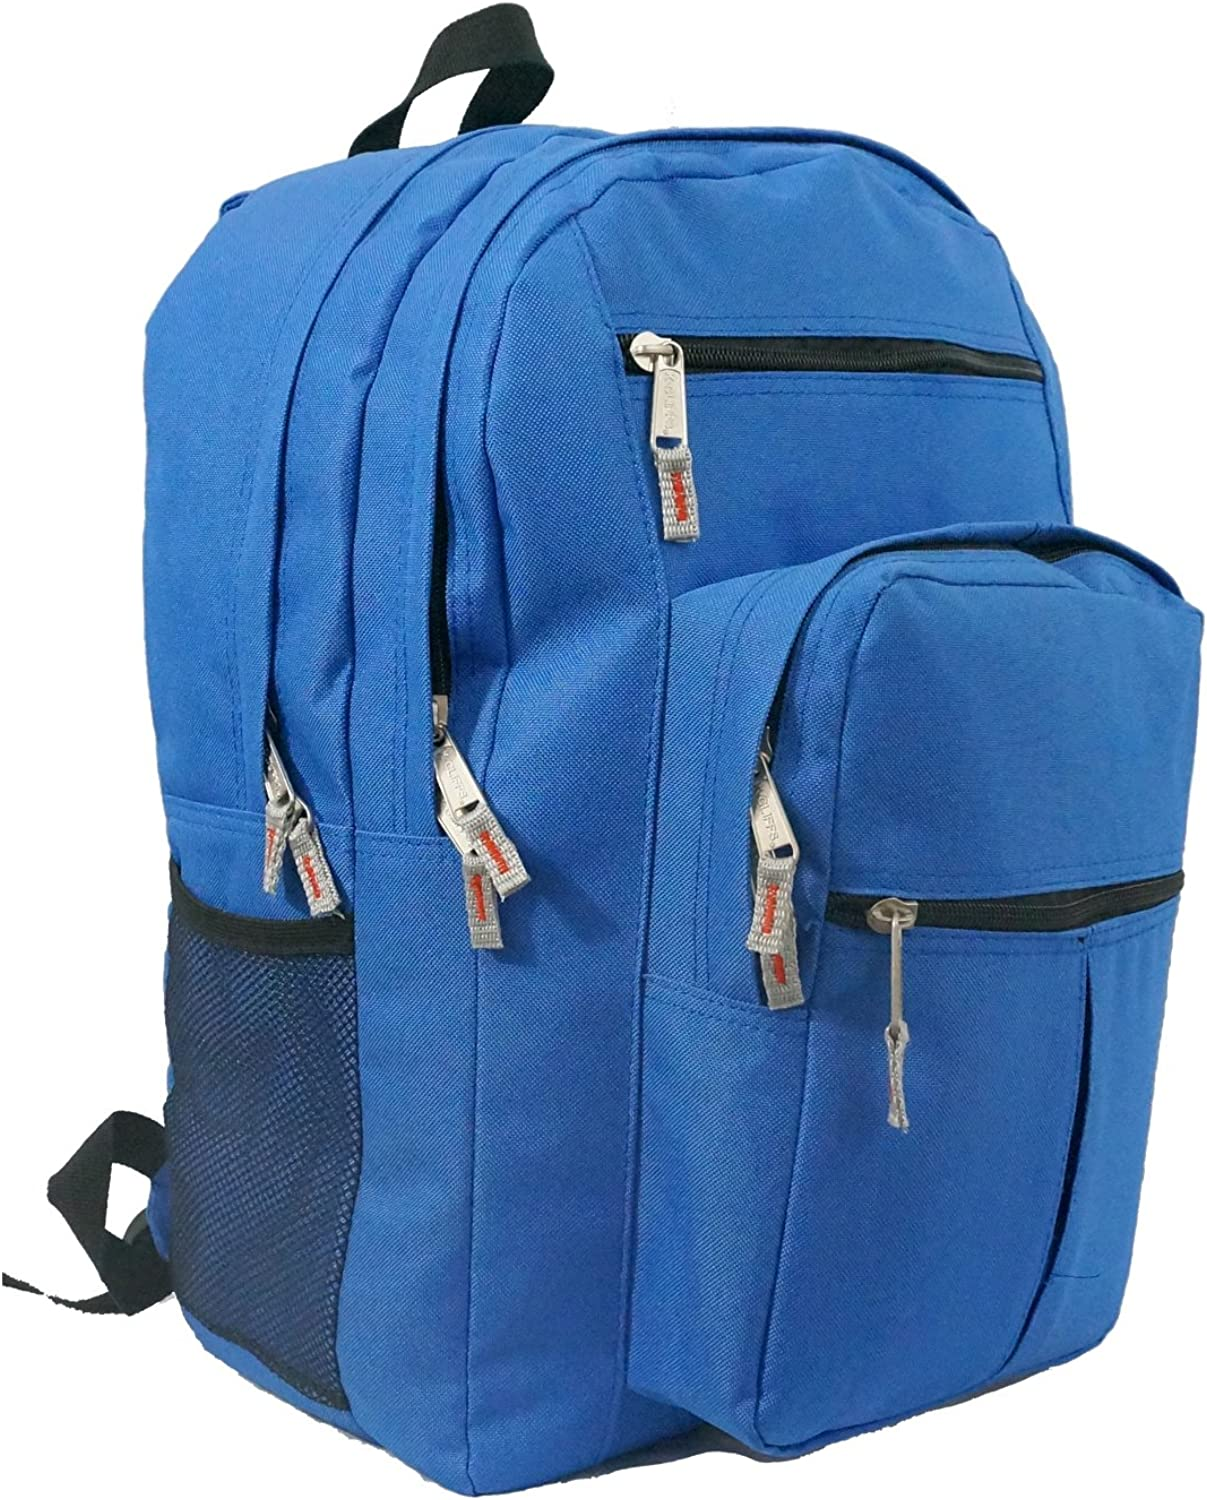 KCliffs Multi pockets Backpack School Bag Day Pack Book bag.18 Inches.Royal